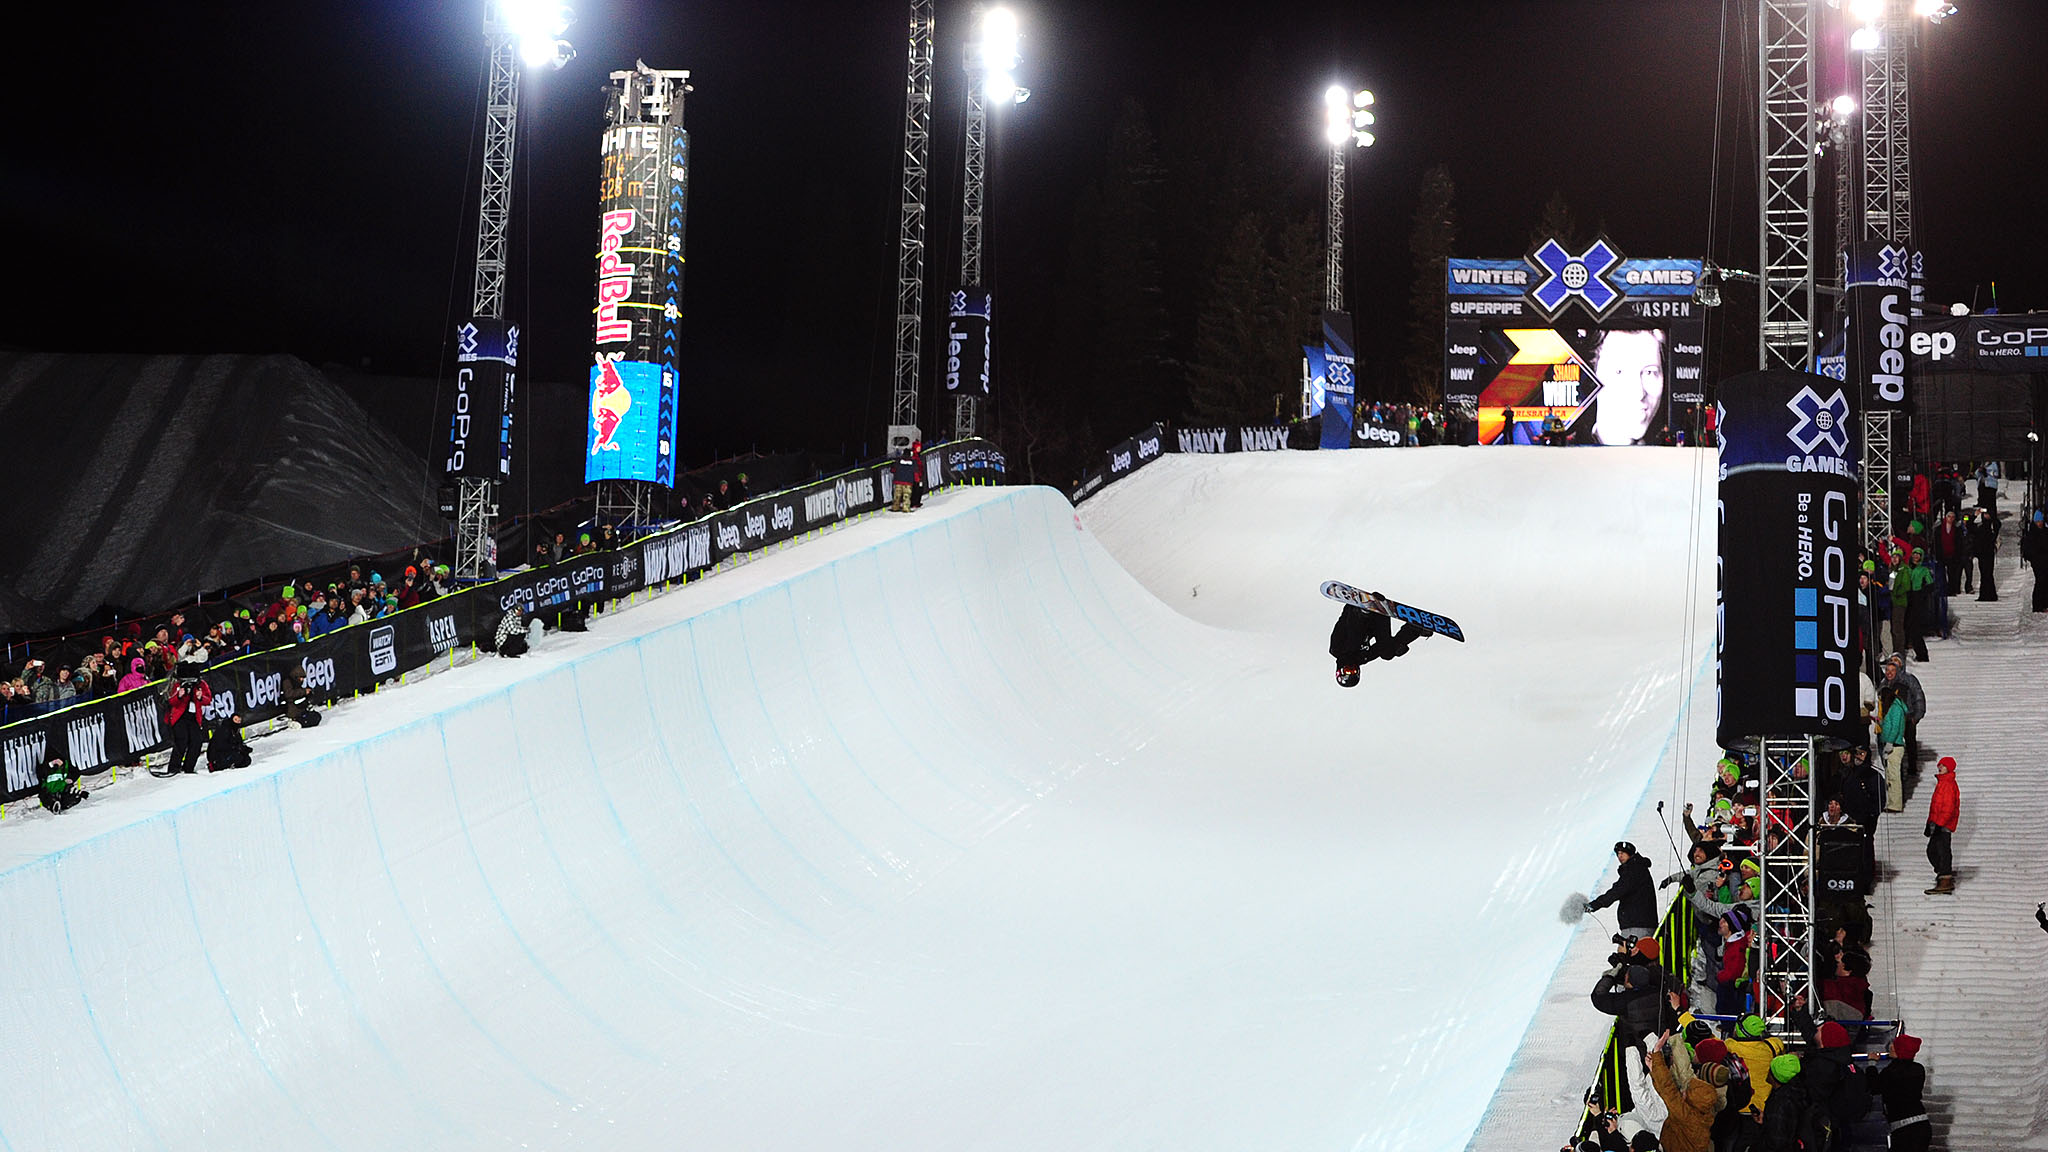 Shaun White cruised to a sixth straight SuperPipe win, notching a 98 on his second run.